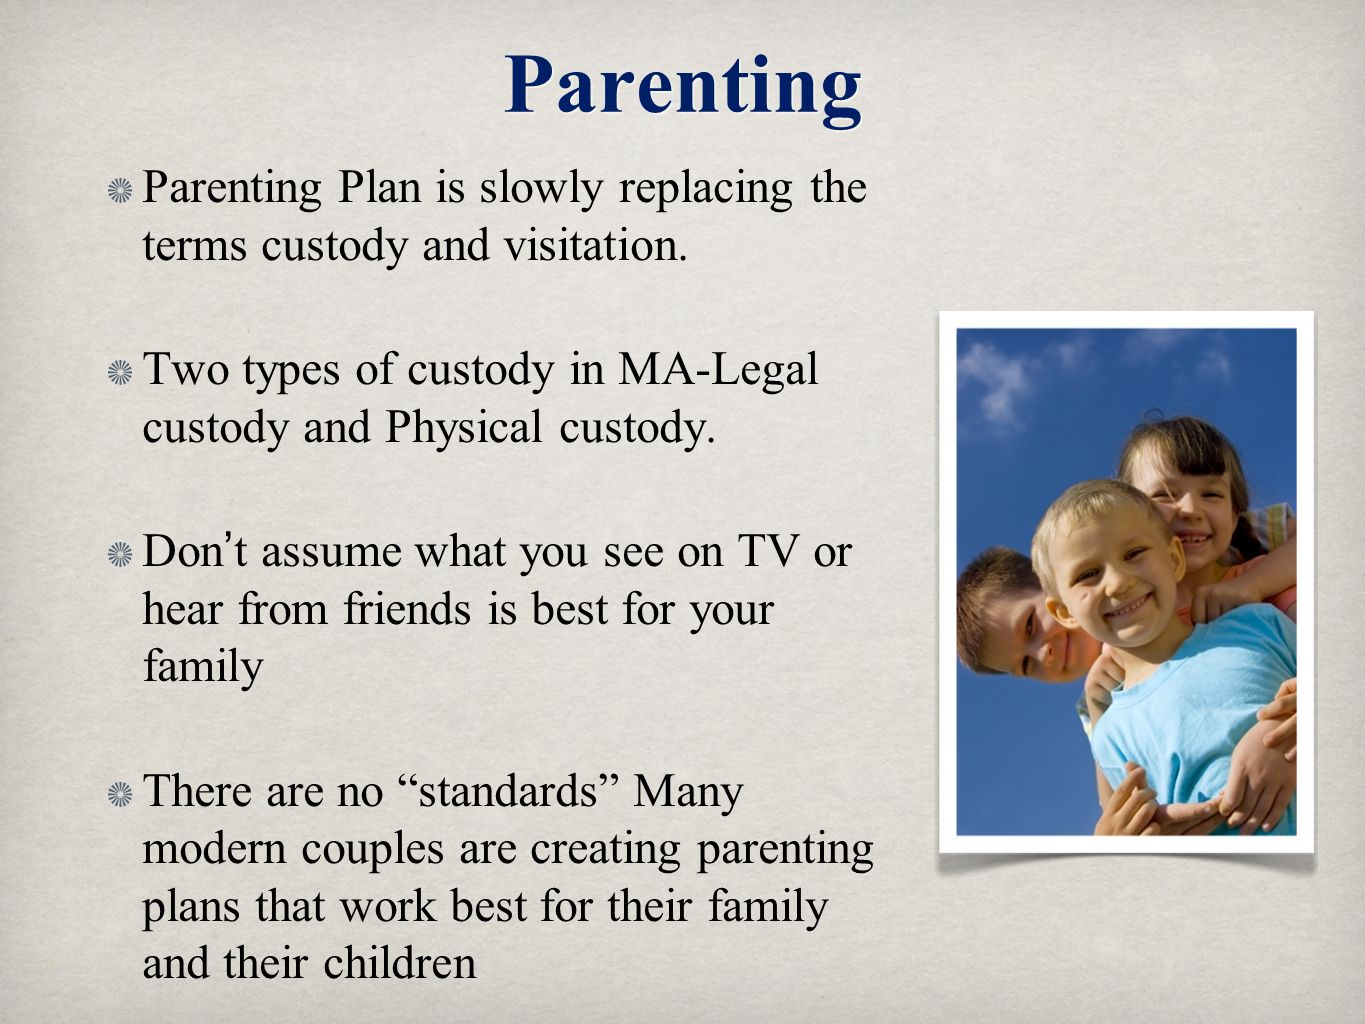 Parenting Parenting Plan is slowly replacing the terms custody and visitation. Two types of custody in MA-Legal custody and Physical custody.